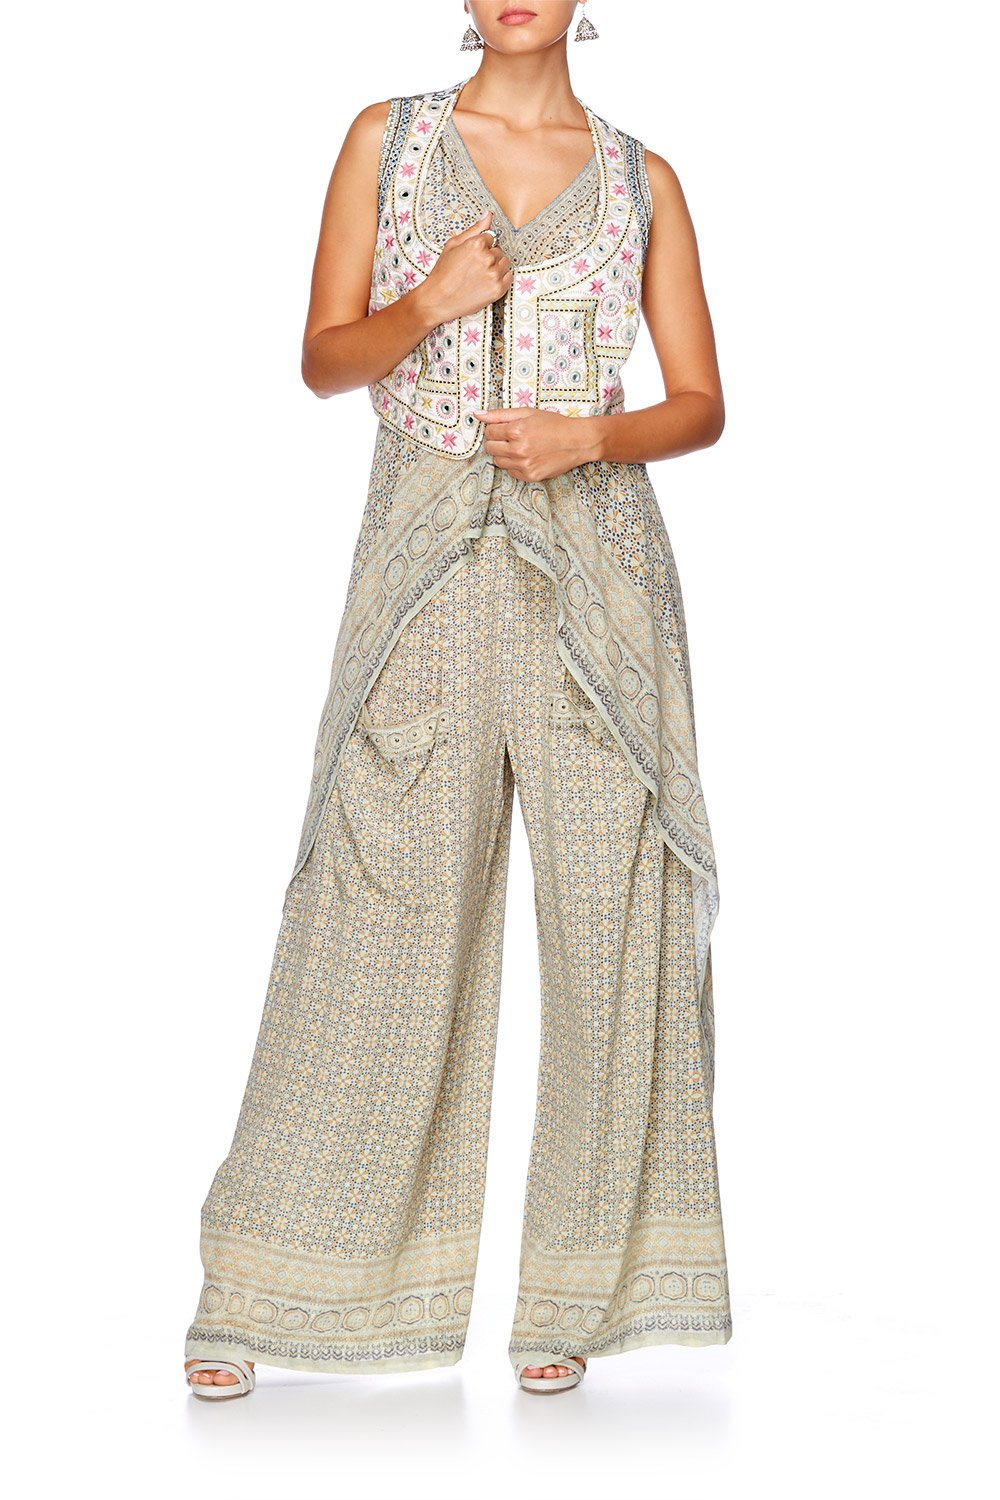 THREADED UNION WIDE LEG TROUSER